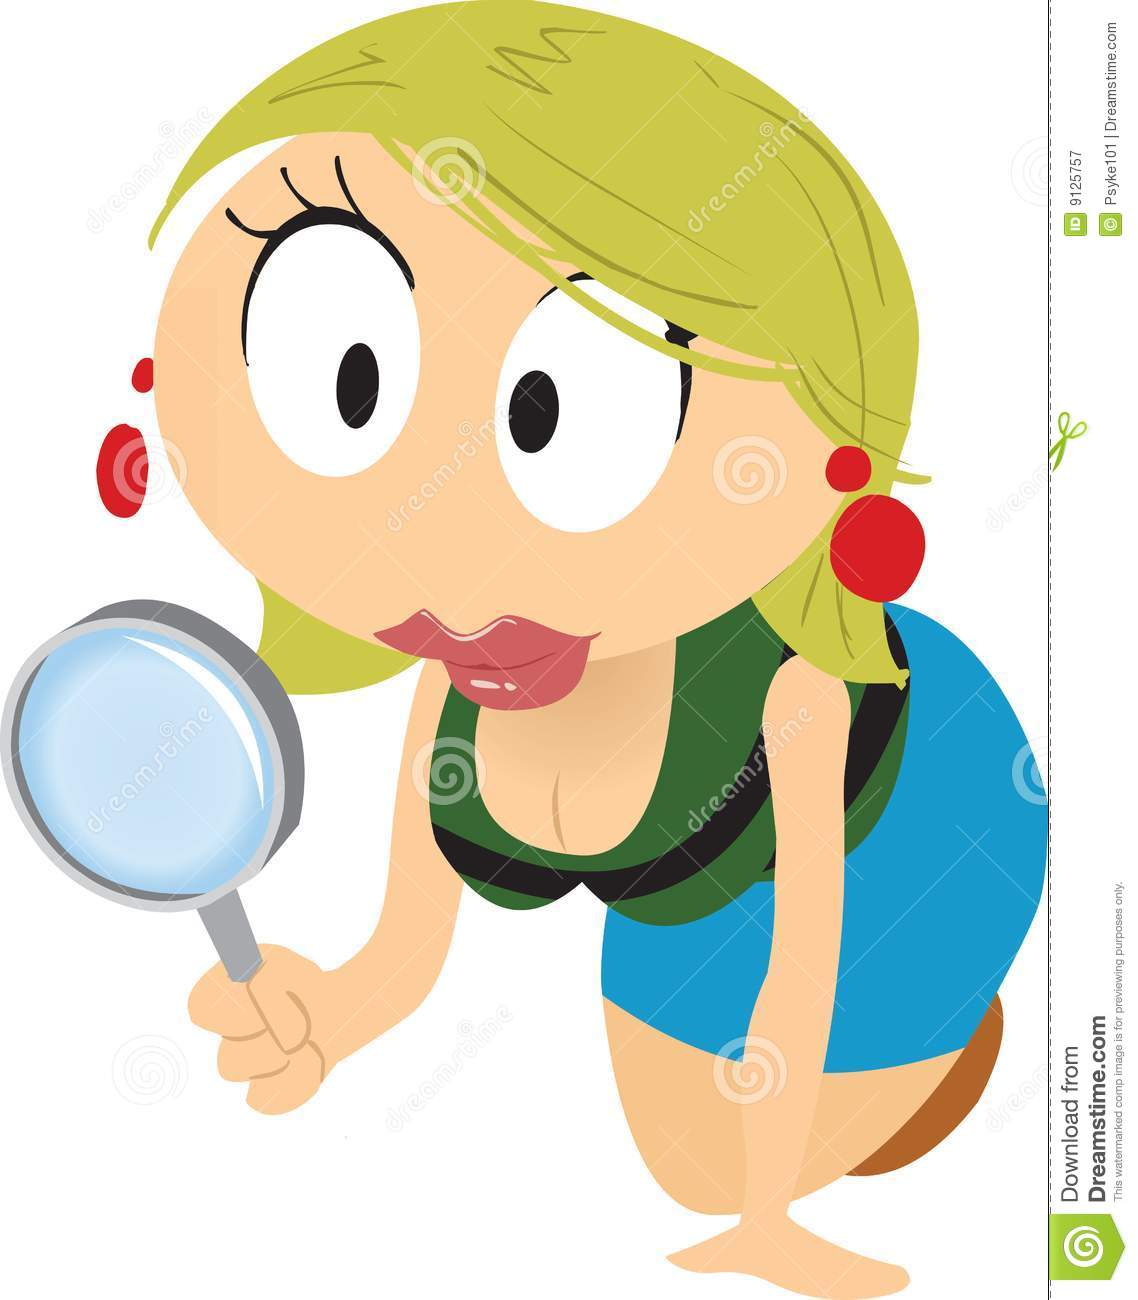 Cartoon Girl Searching Royalty Free Stock Photography - Image: 9125757